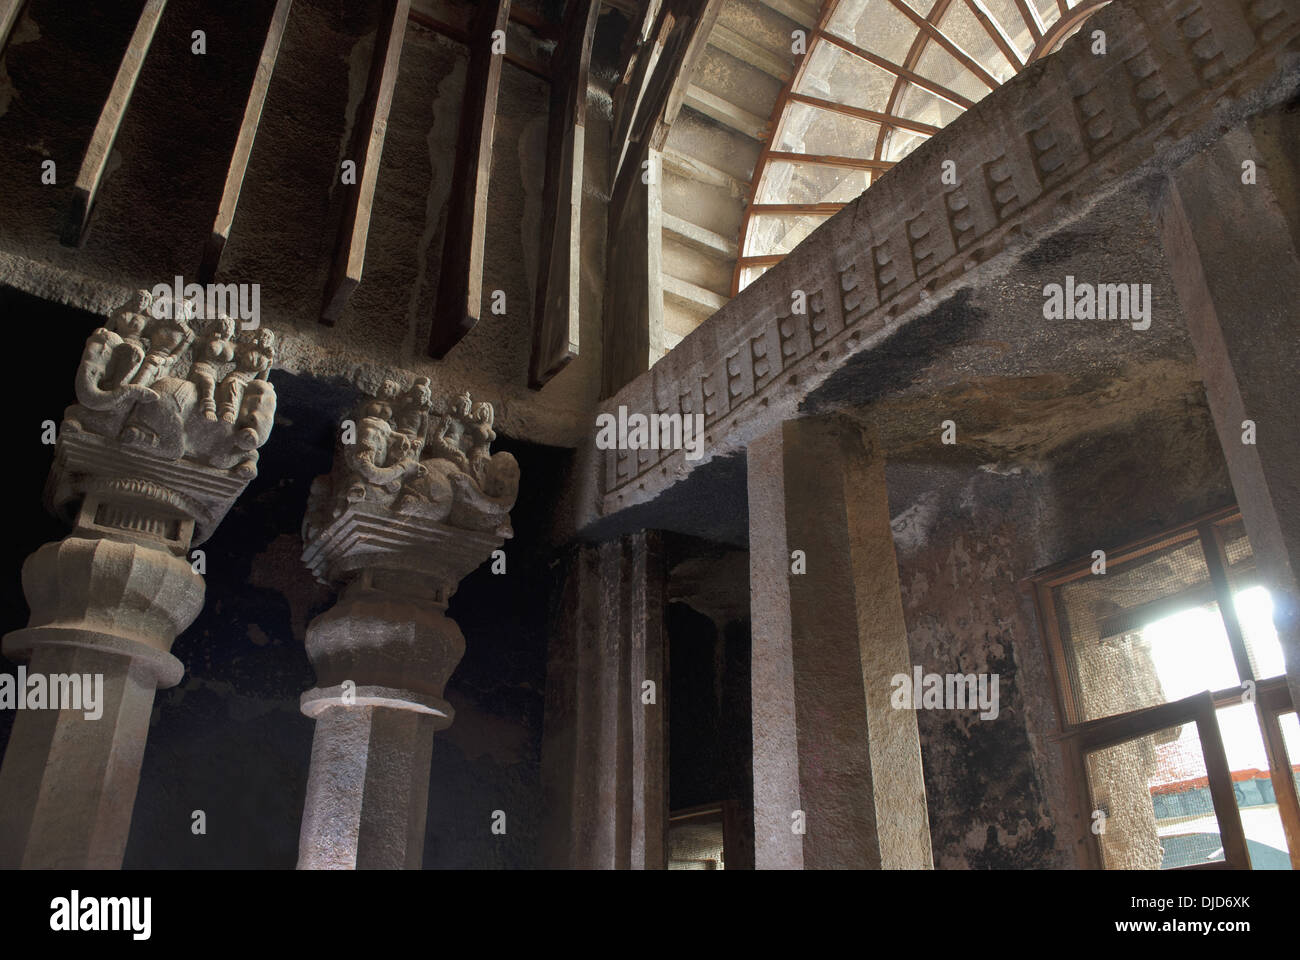 Chaitya hall showing right side pillars and wooden appendages on the upper portion. Karla Caves, dist Pune, Maharashtra India. - Stock Image